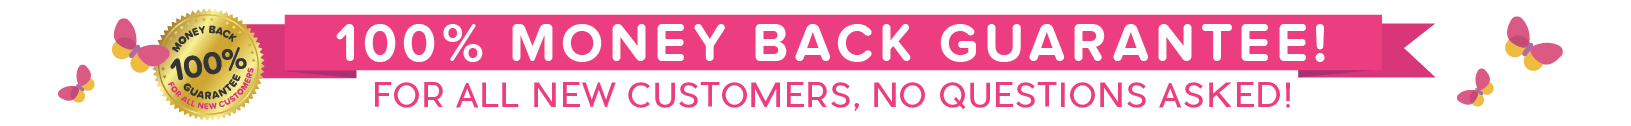 100% Money Back Guarantee for ALL New Customers. No Questions Asked!